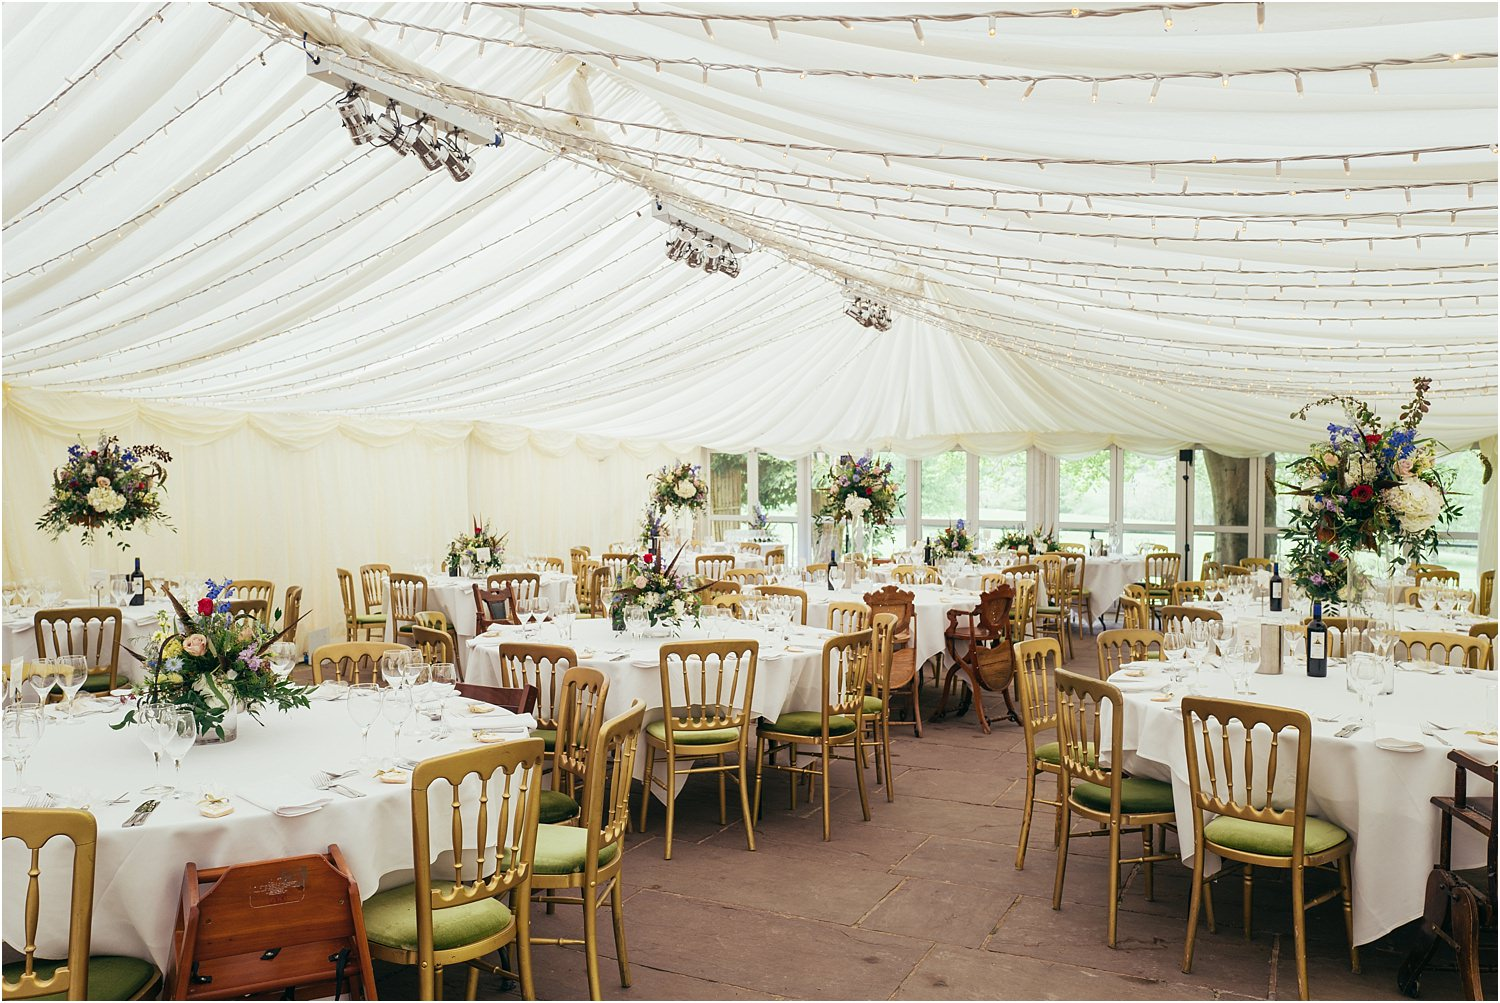 Interior of marquee for wedding at The Inn at Whitewell, Lancashire. Flowers by The Flower Shop of Clitheroe